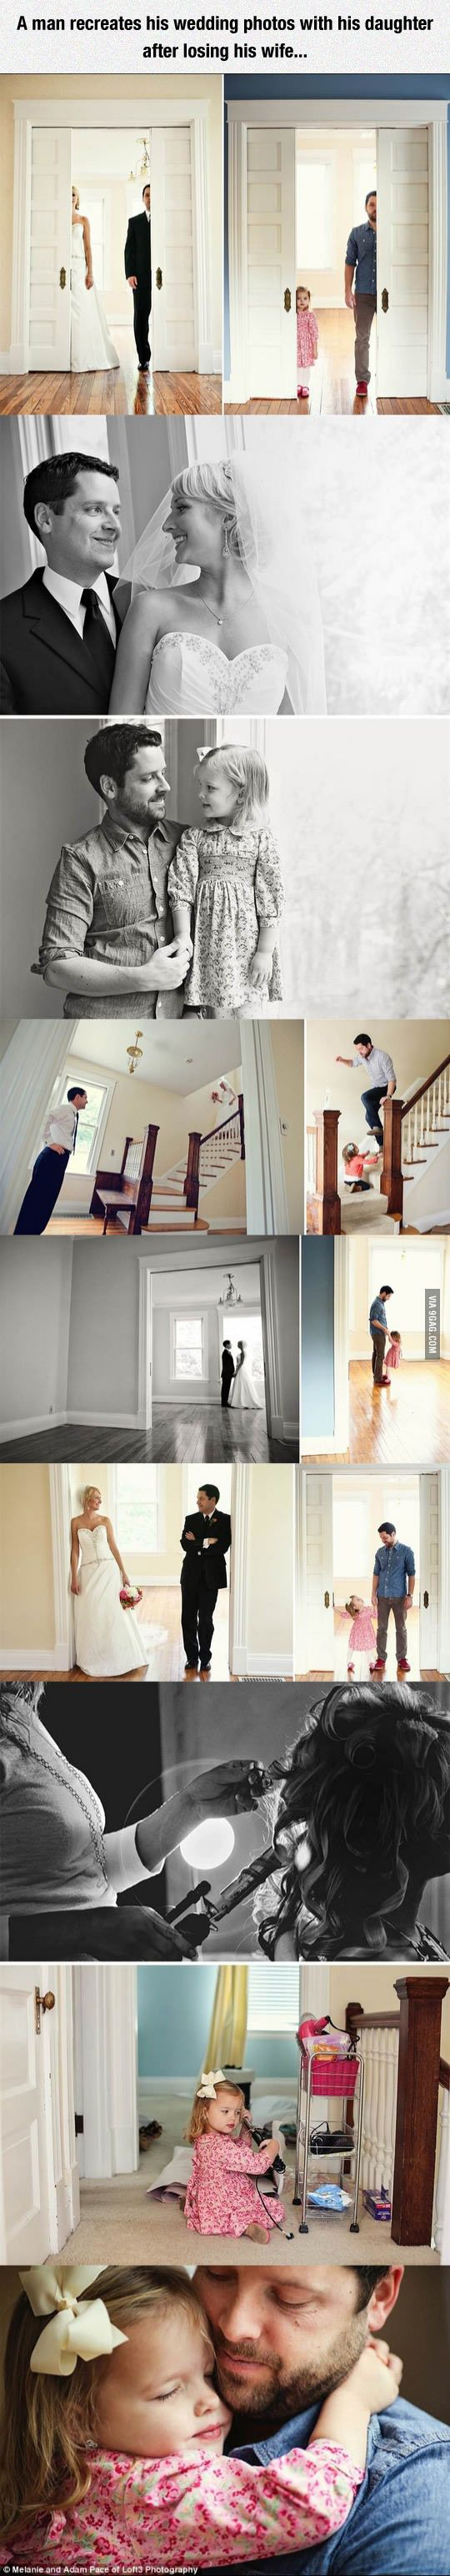 A man recreates his wedding photos with his daughter